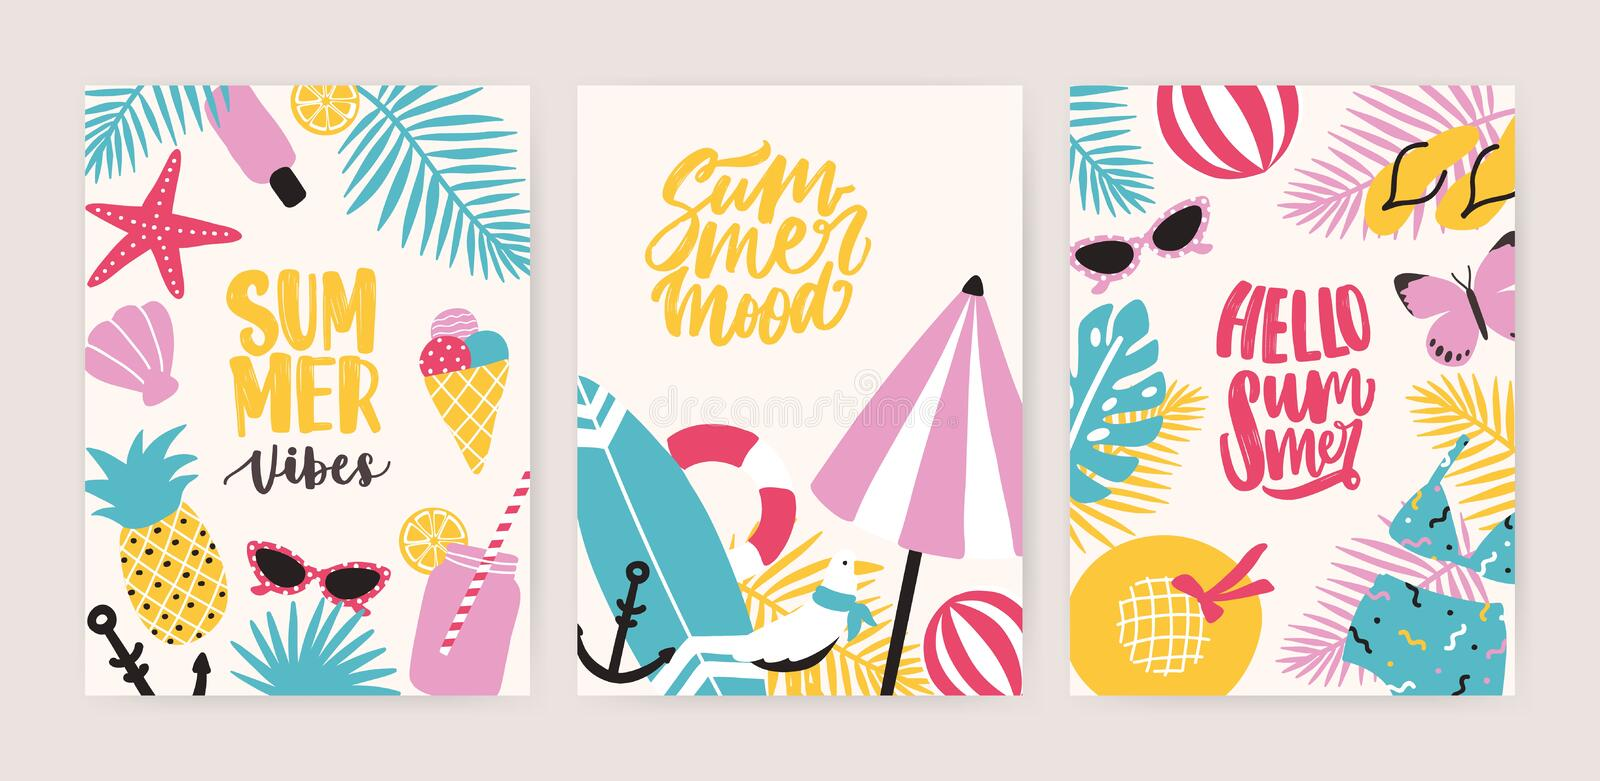 Collection of summer card or flyer templates with decorative summertime lettering and tropical exotic paradise beach royalty free illustration